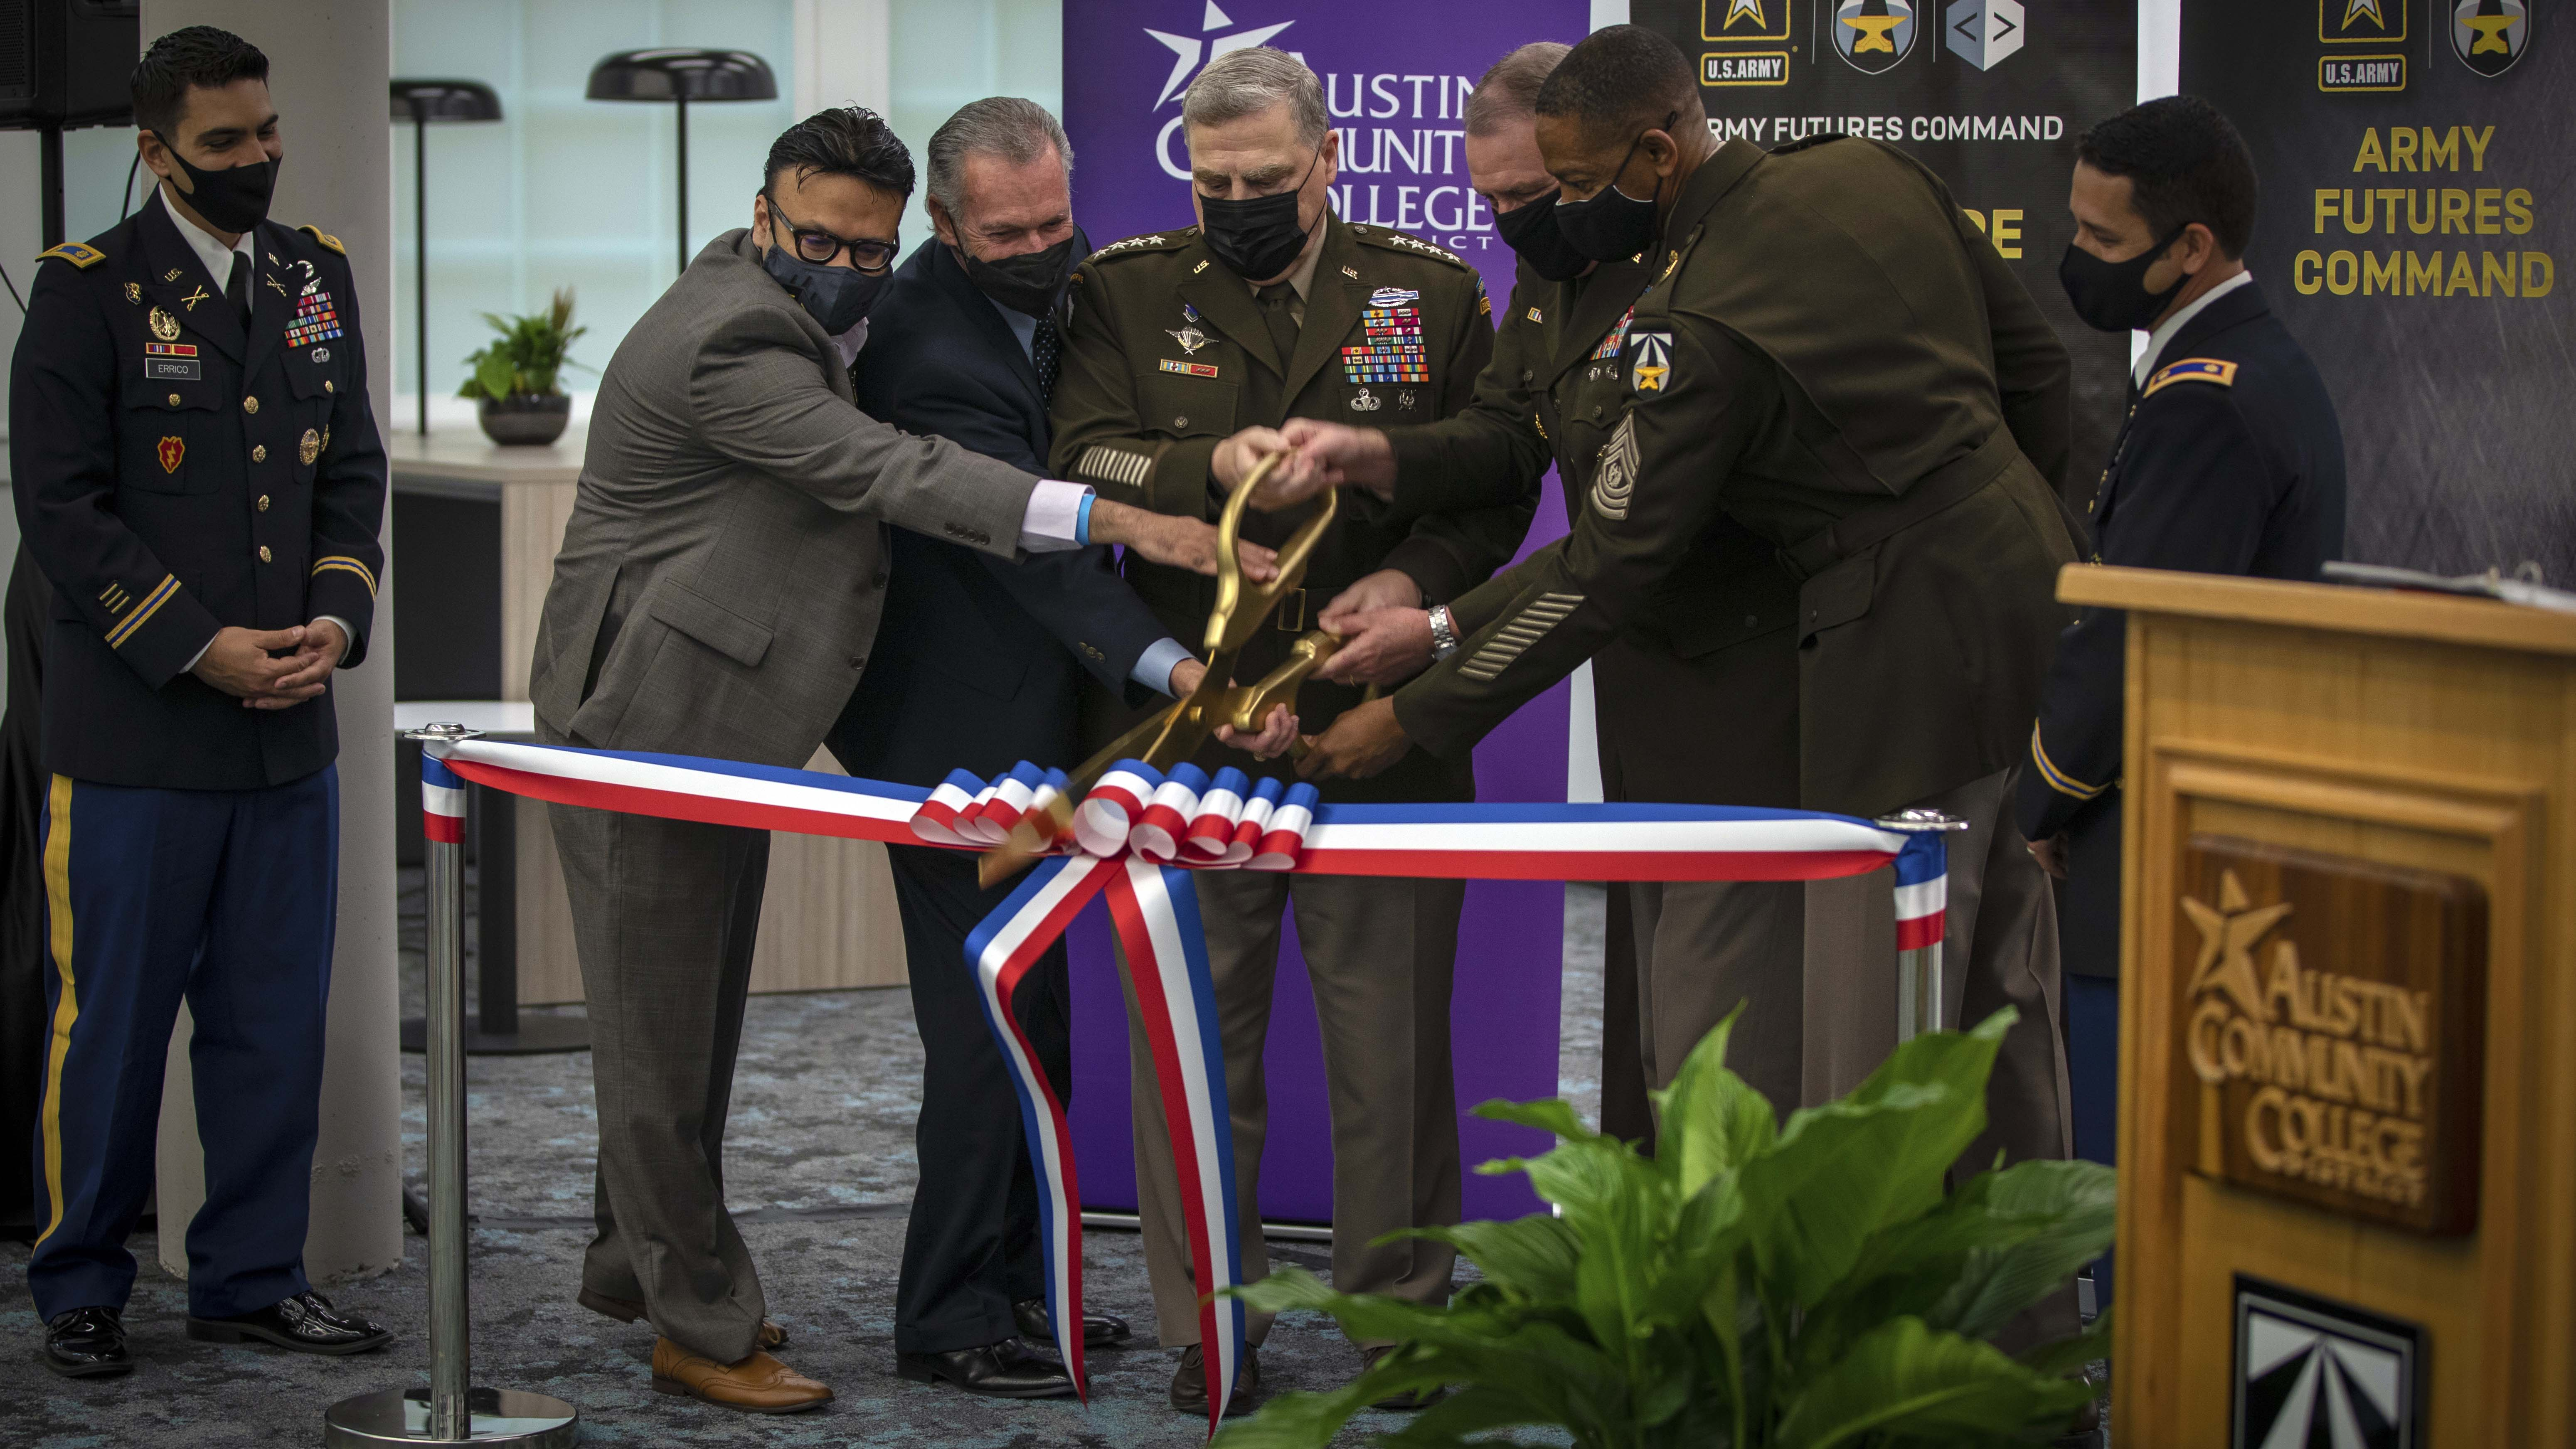 Soldiers cutting a ribbon